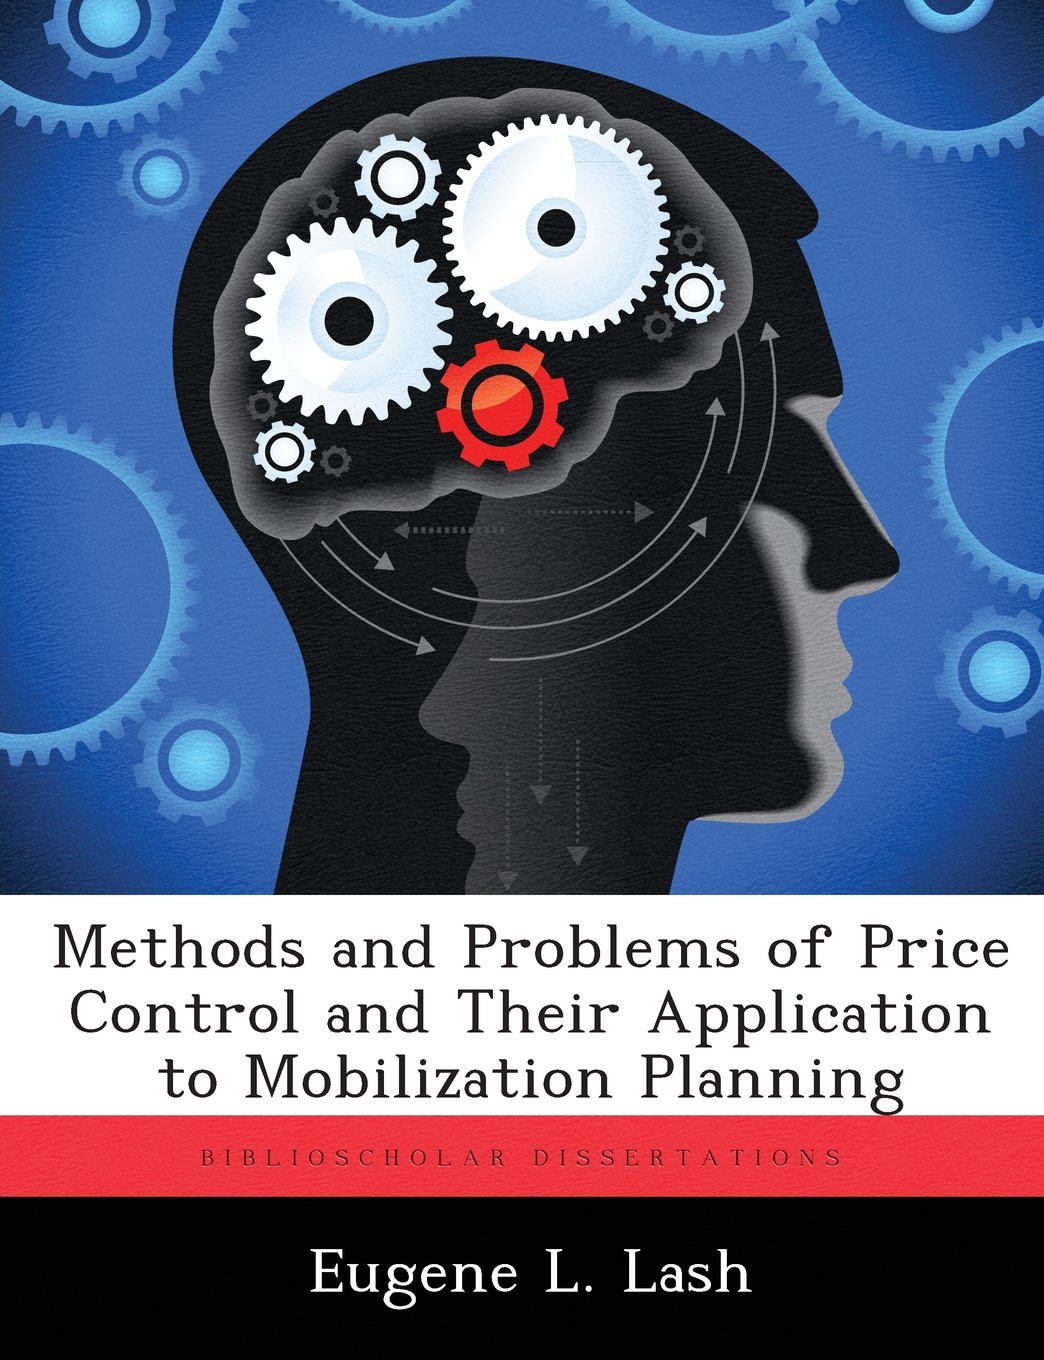 Read Online Methods and Problems of Price Control and Their Application to Mobilization Planning PDF